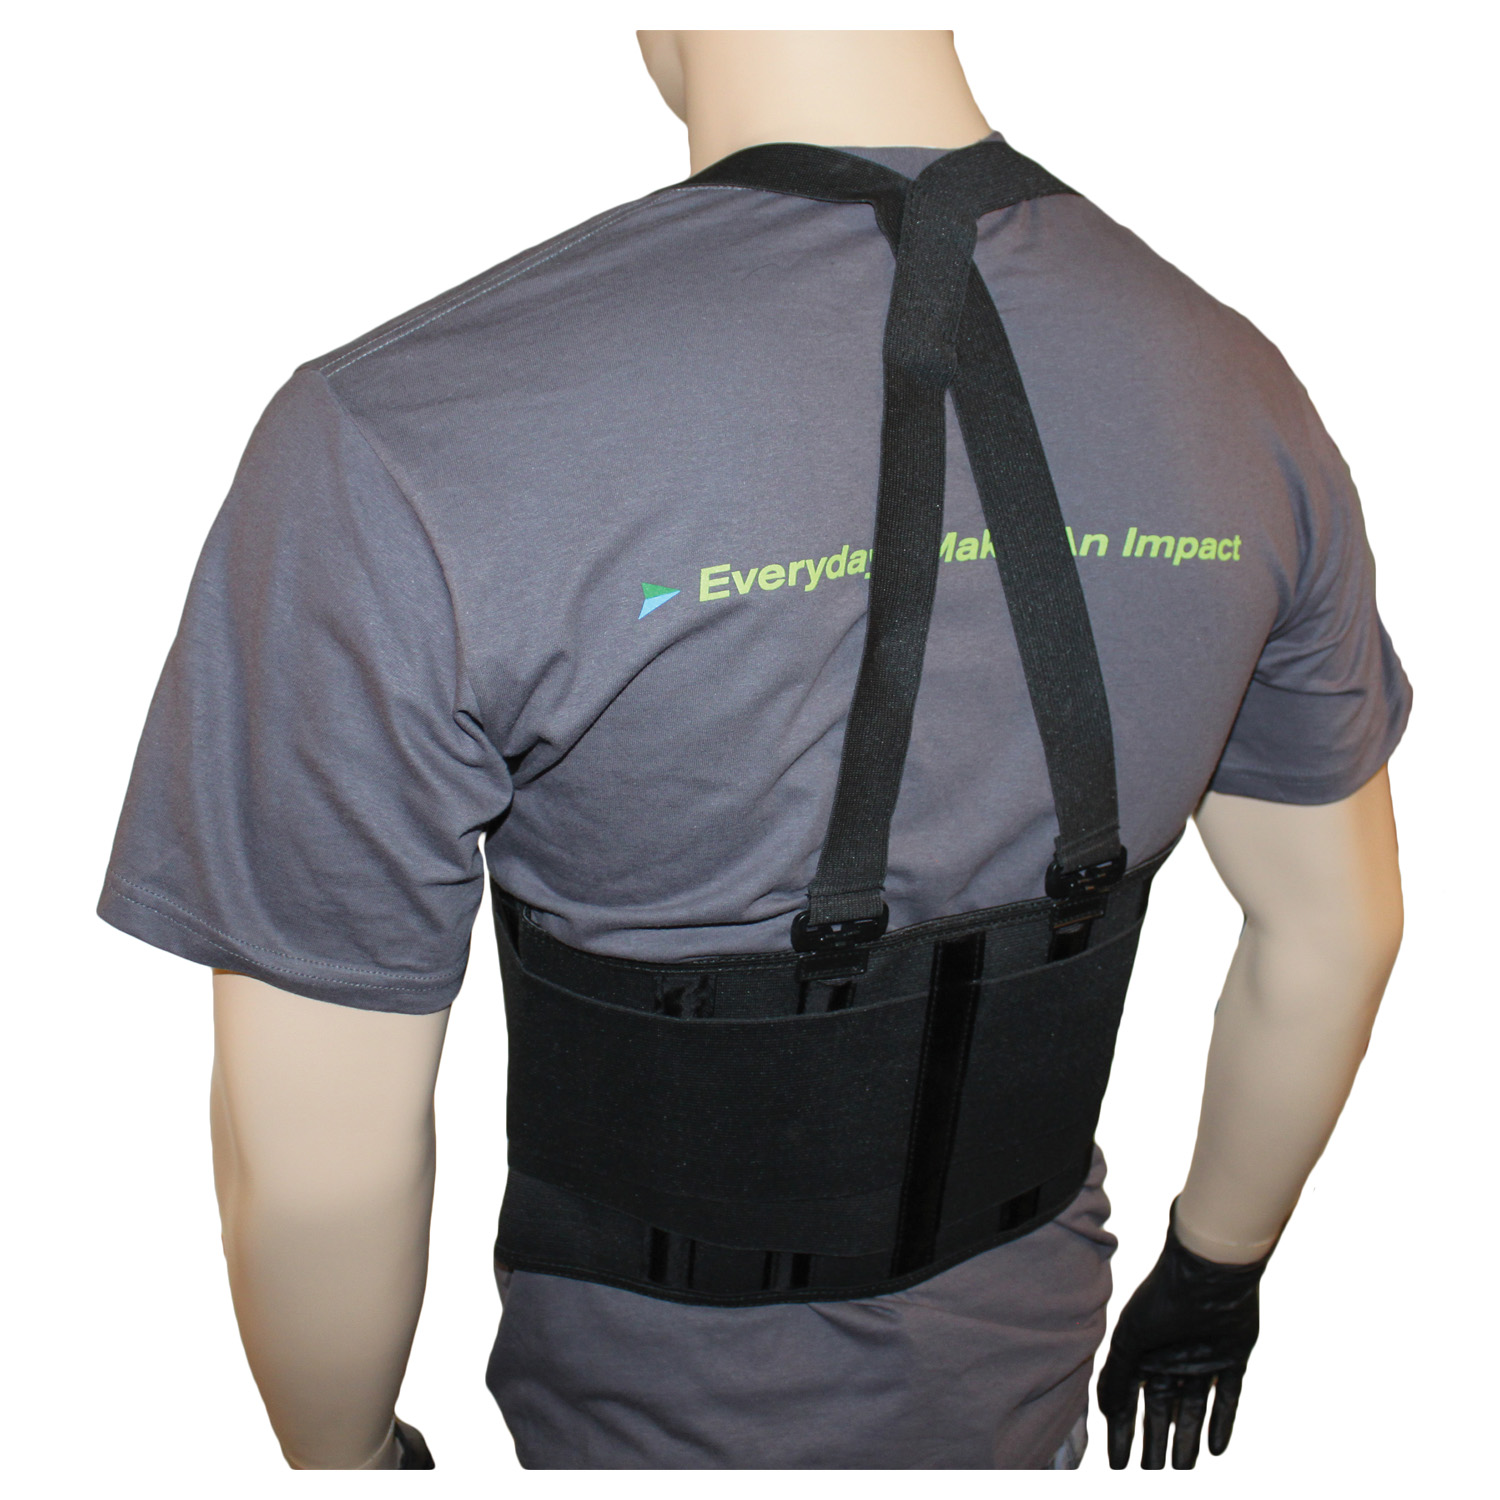 1550-94 Impact Products 7389L back support belt